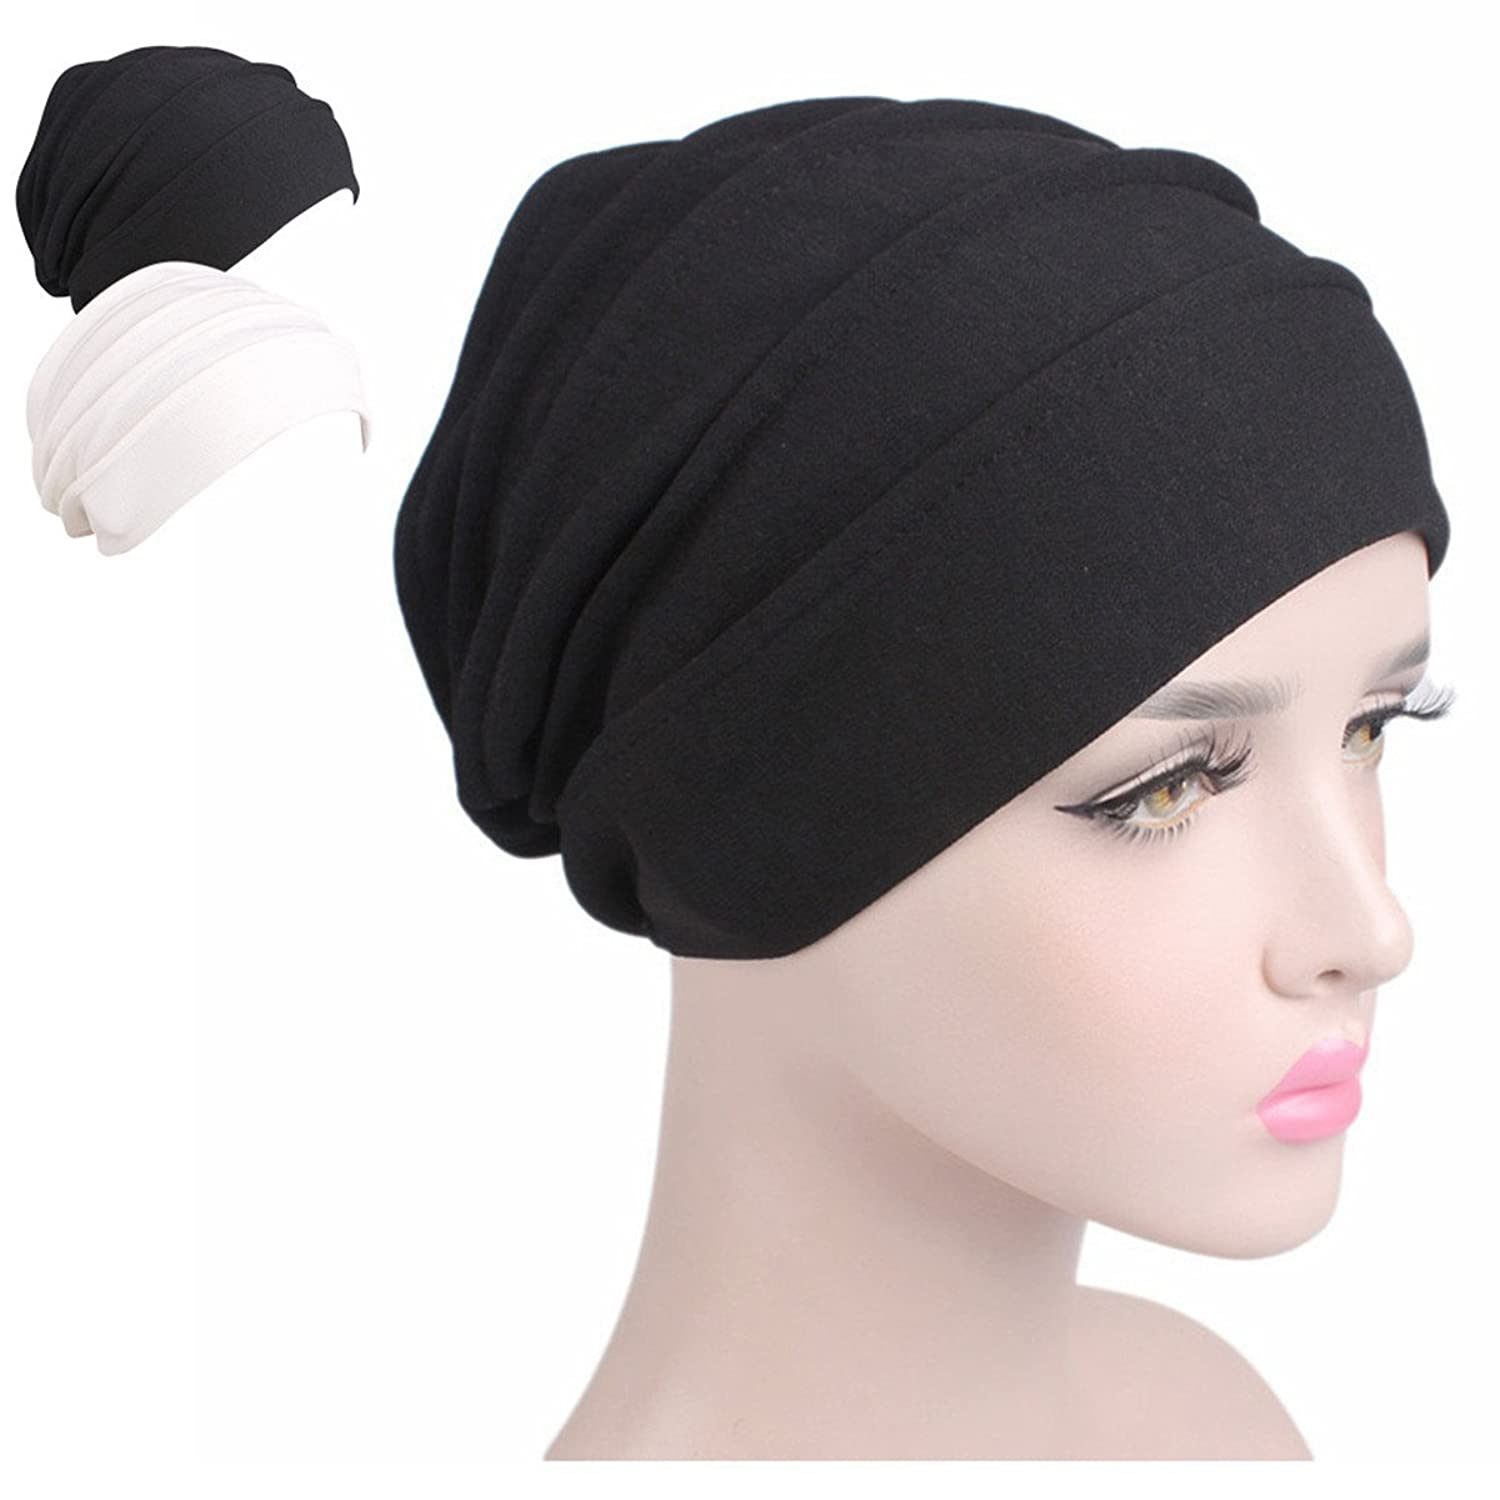 1 Or 2 Or 3 Packs Slouchy Beanie Hat For Women - Reach USA Proposition 65 Standard, 30-DAY MONEY REFUND GUARANTEED